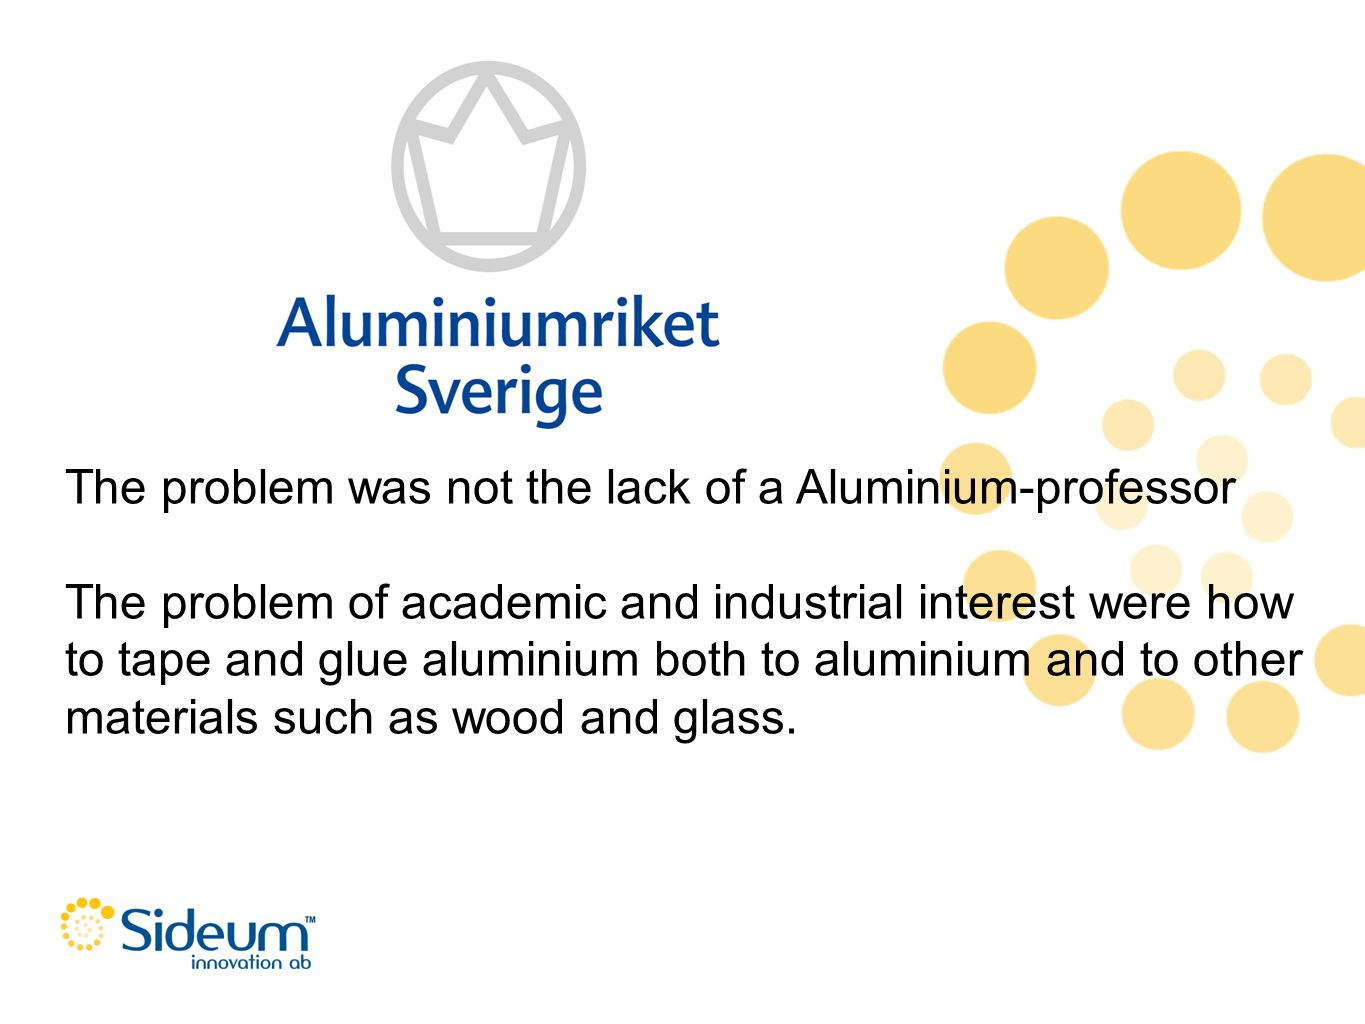 The problem was not the lack of a Aluminium-professor The problem of academic and industrial interest were how to tape and glue aluminium both to alum